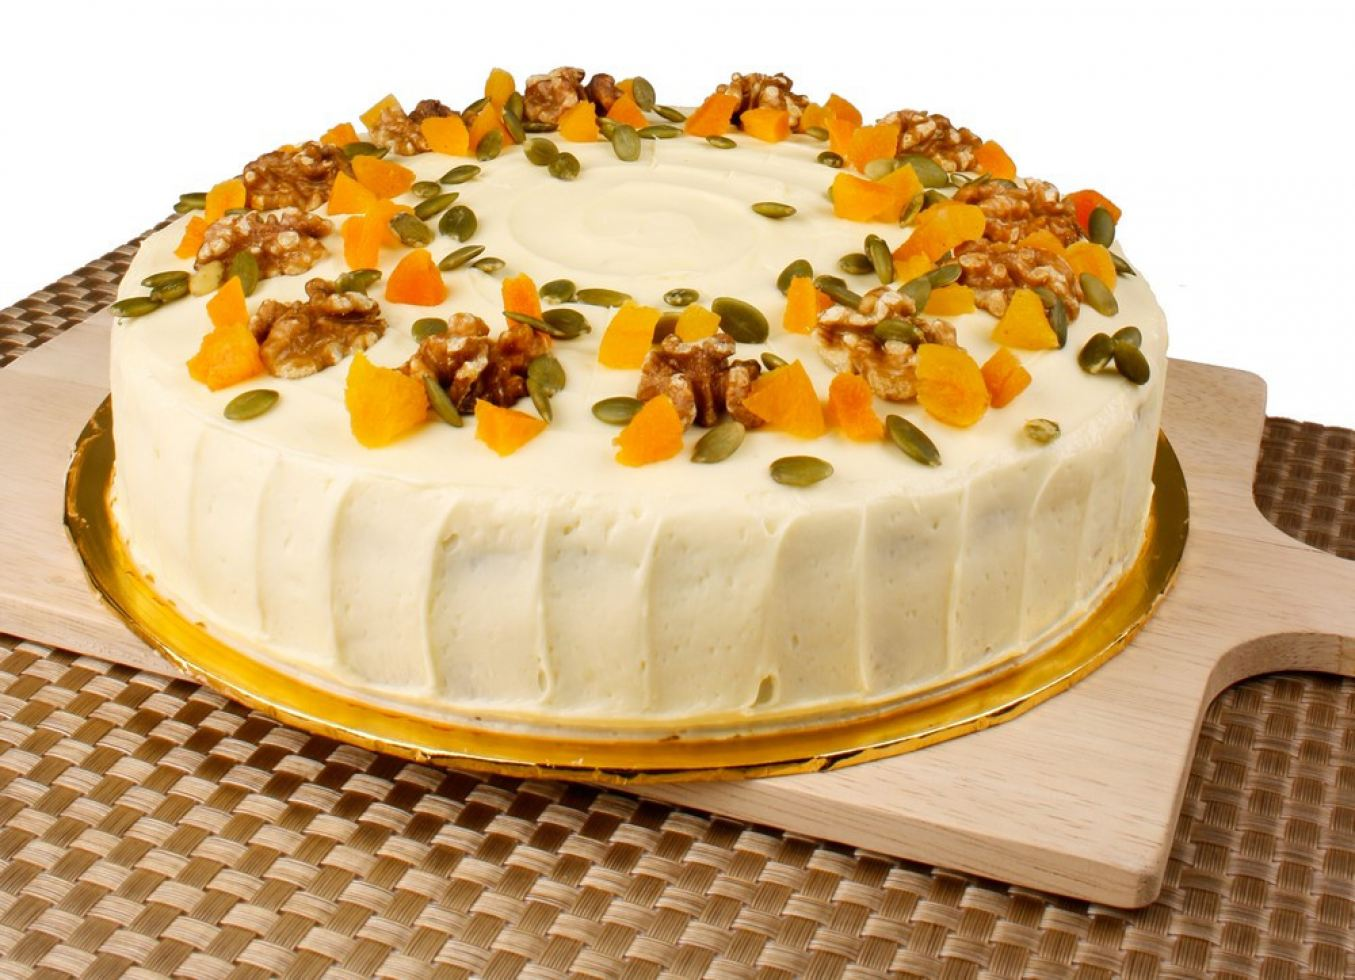 Carrot Cake with Cream Cheese